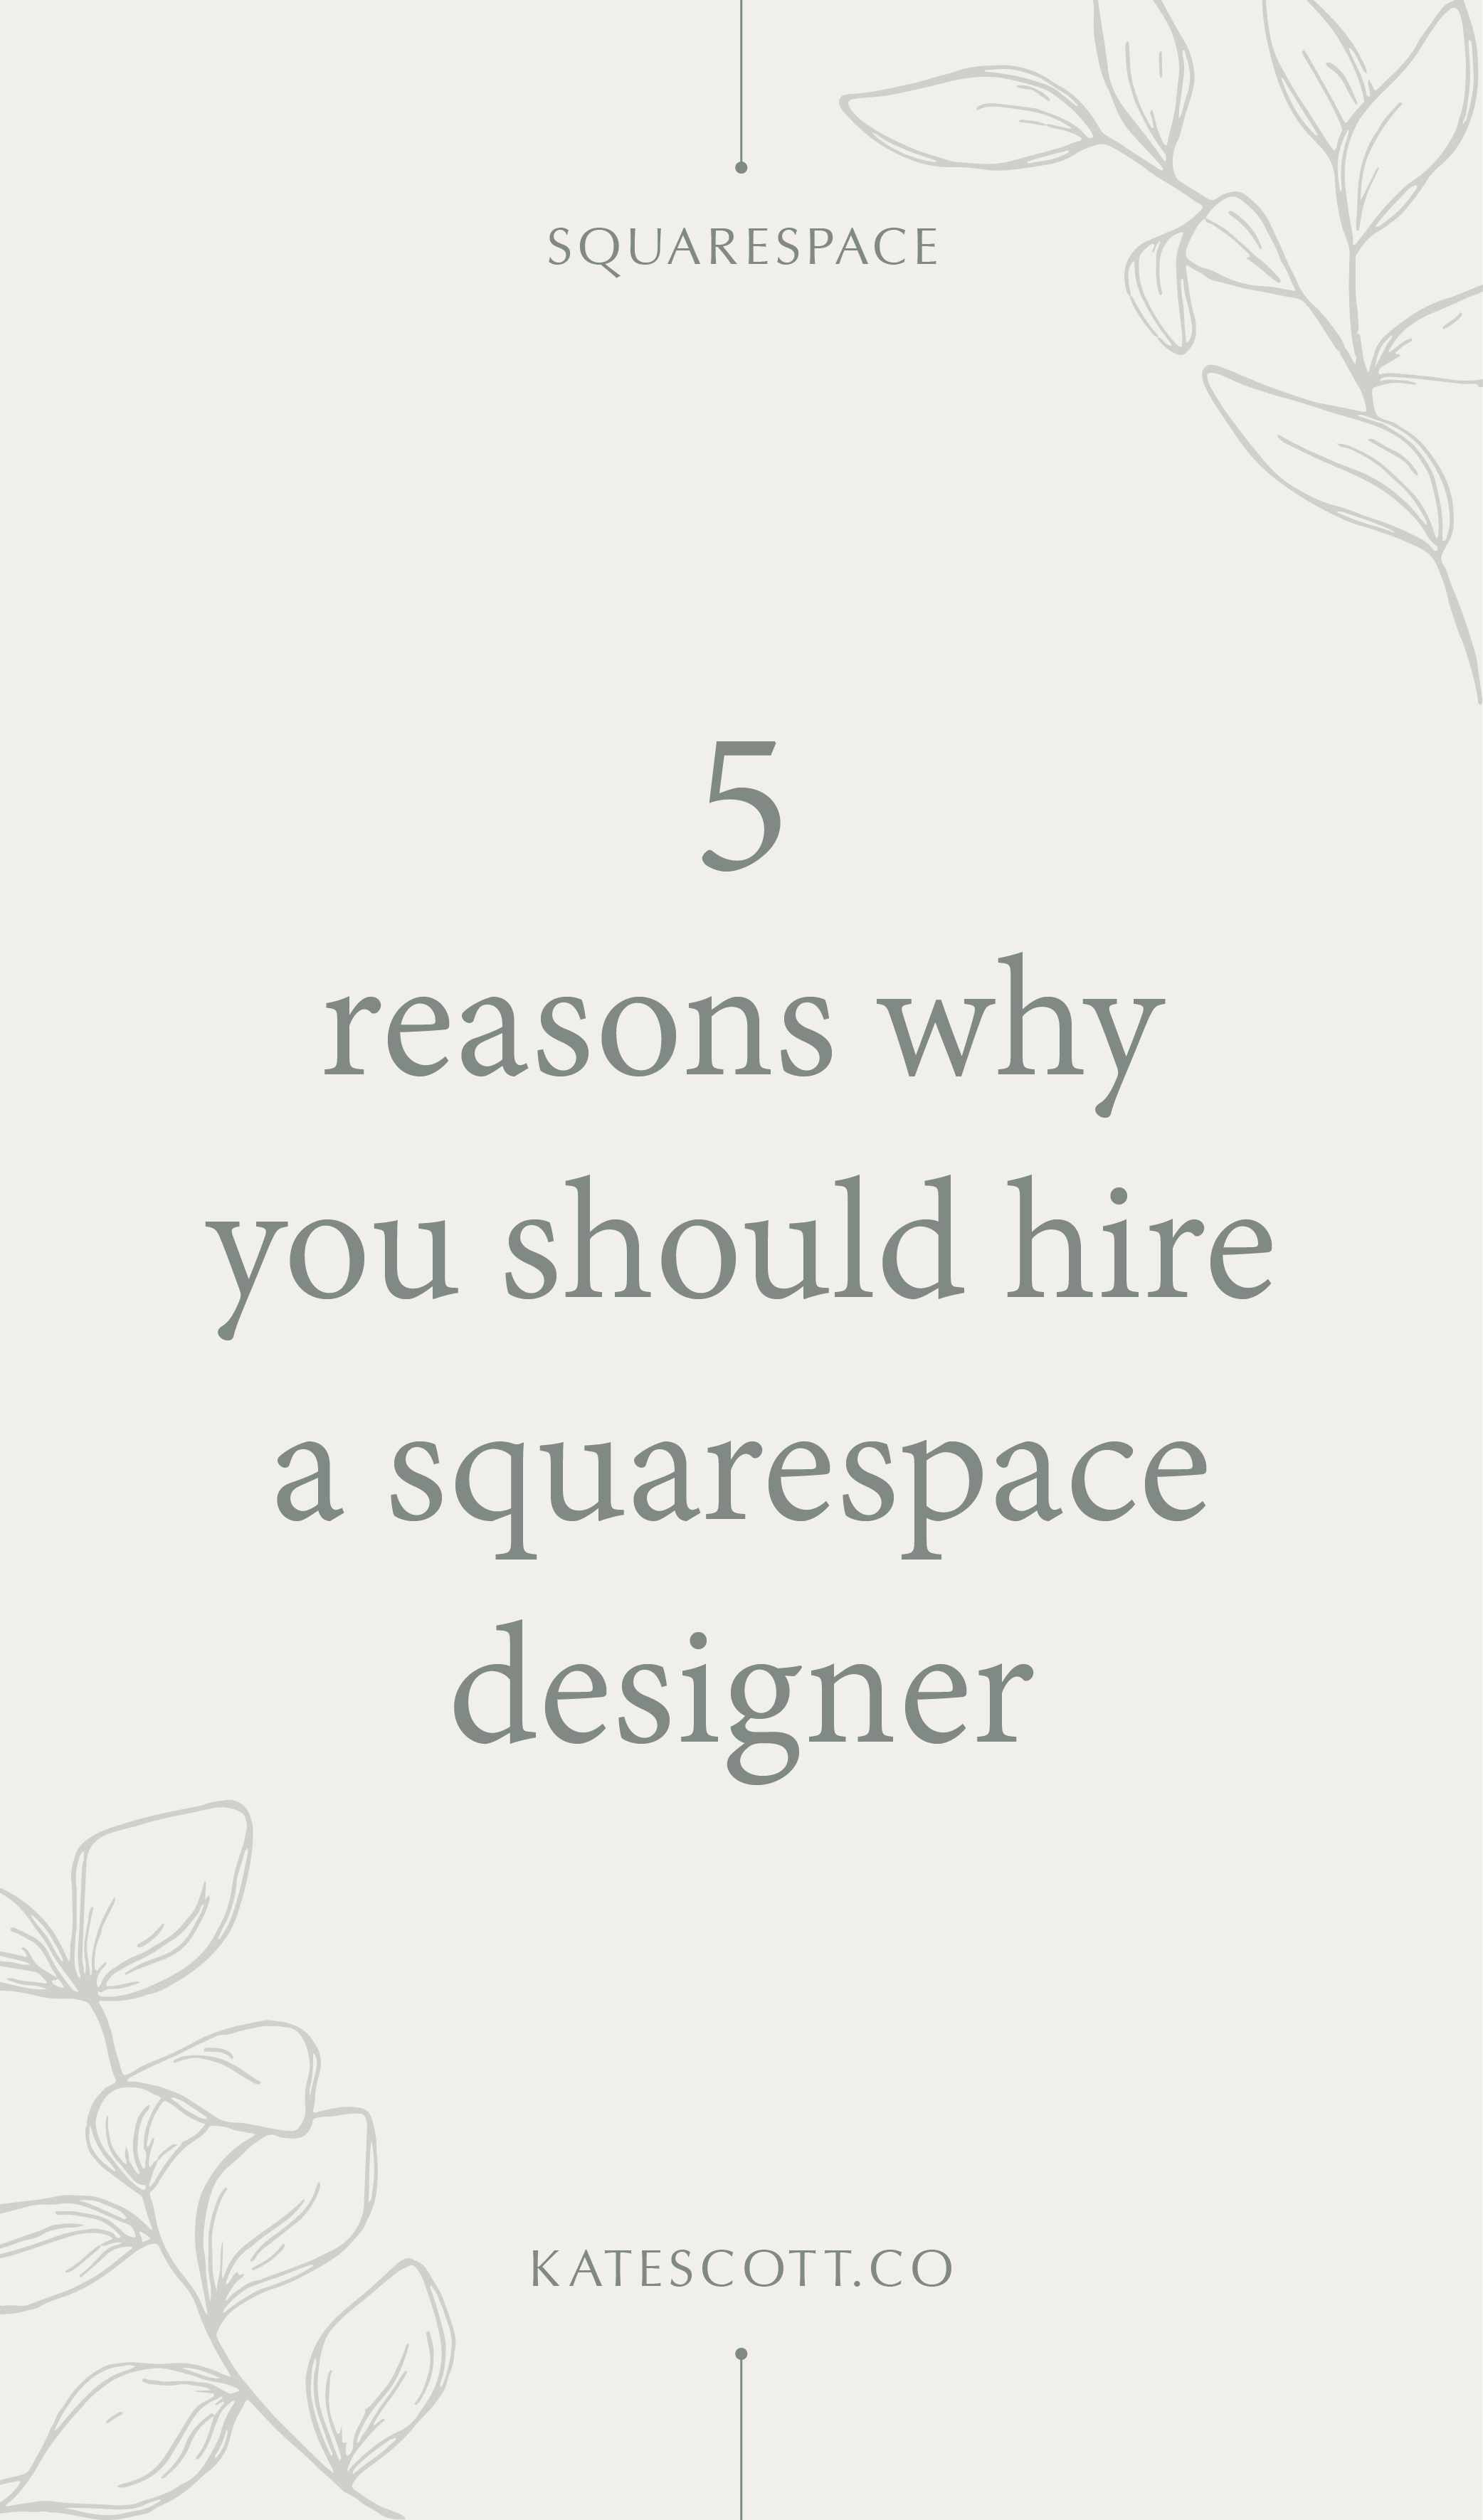 Squarespace is marketed as a DIY website-building platform, so why should you hire a professional Squarespace designer? | Squarespace Designer Website | Squarespace Design | Custom Web Design | Web Designer | Creative Web Design | Web Design Responsive | Responsive Web Design